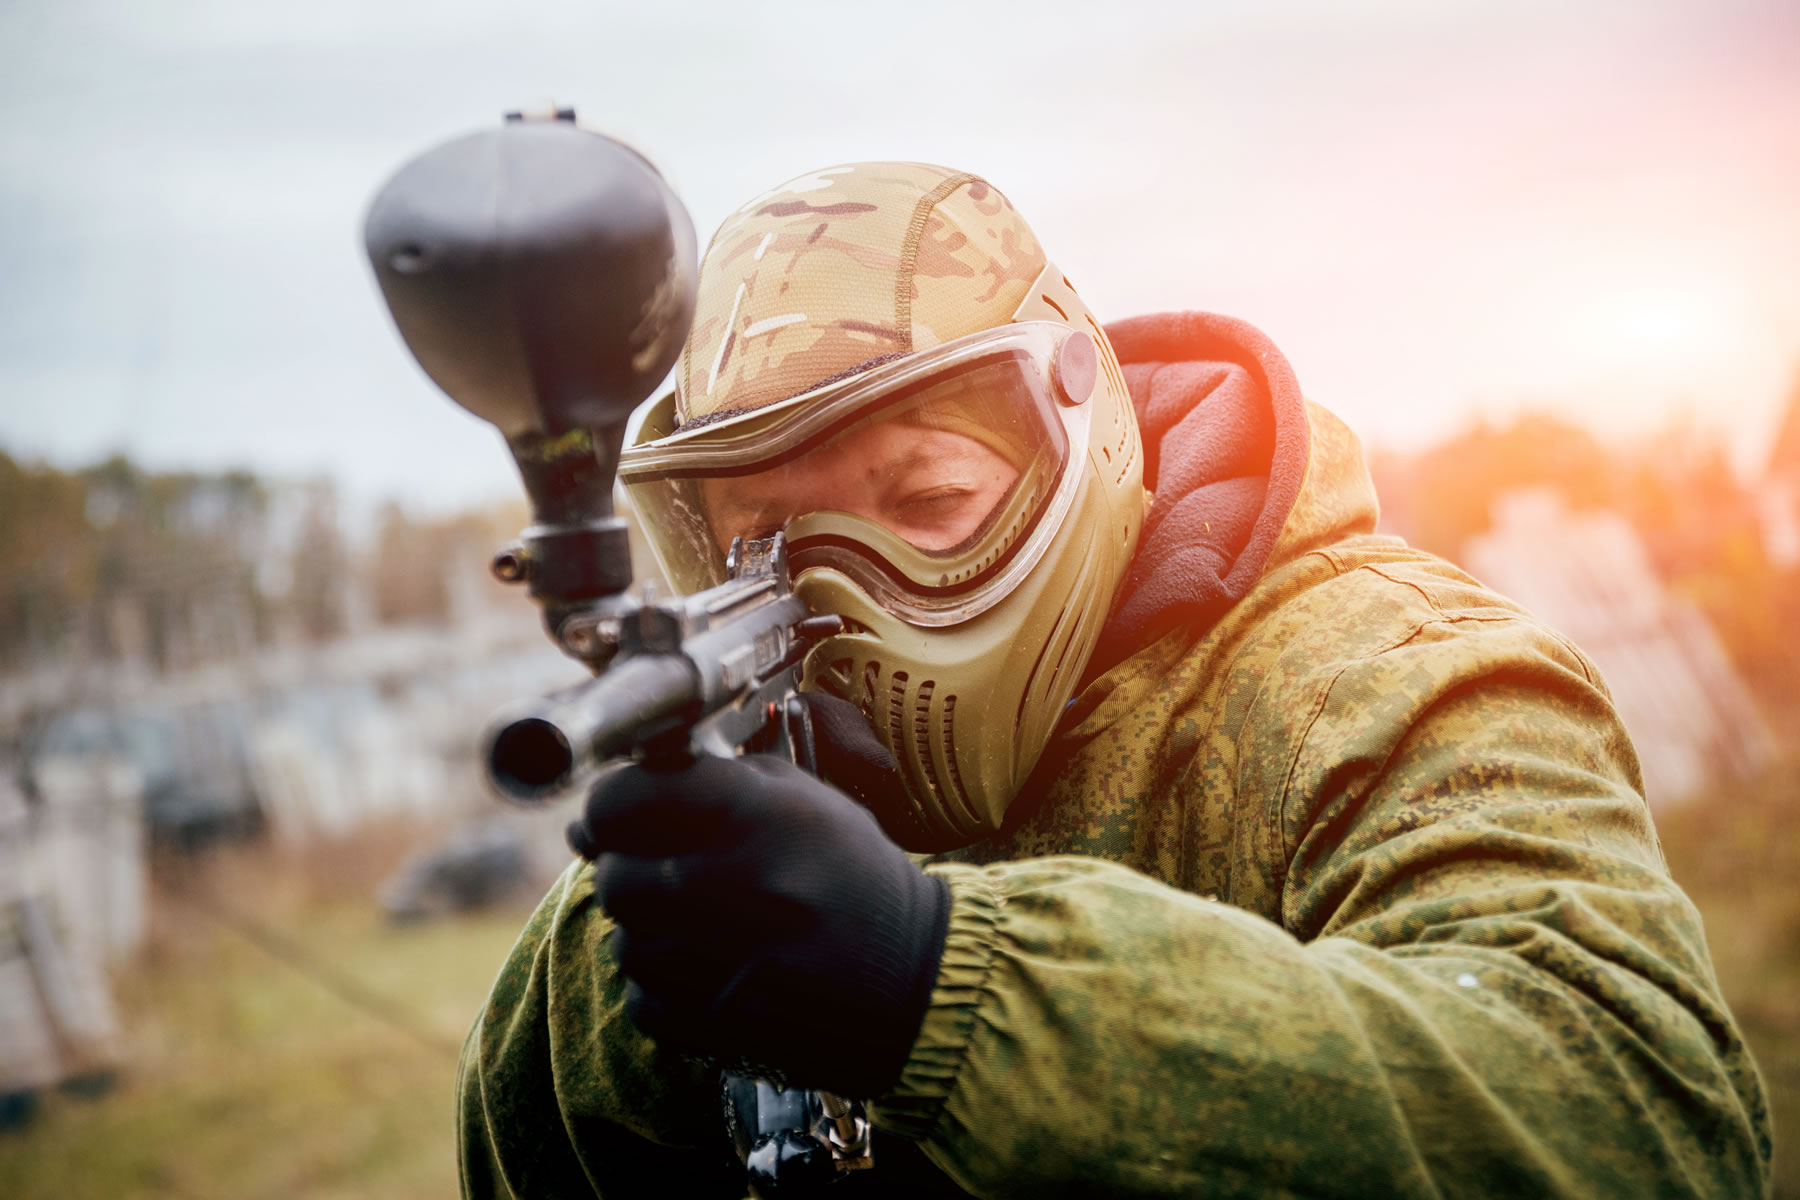 Behaal de meeste punten tijdens onze Paintball shoot-out